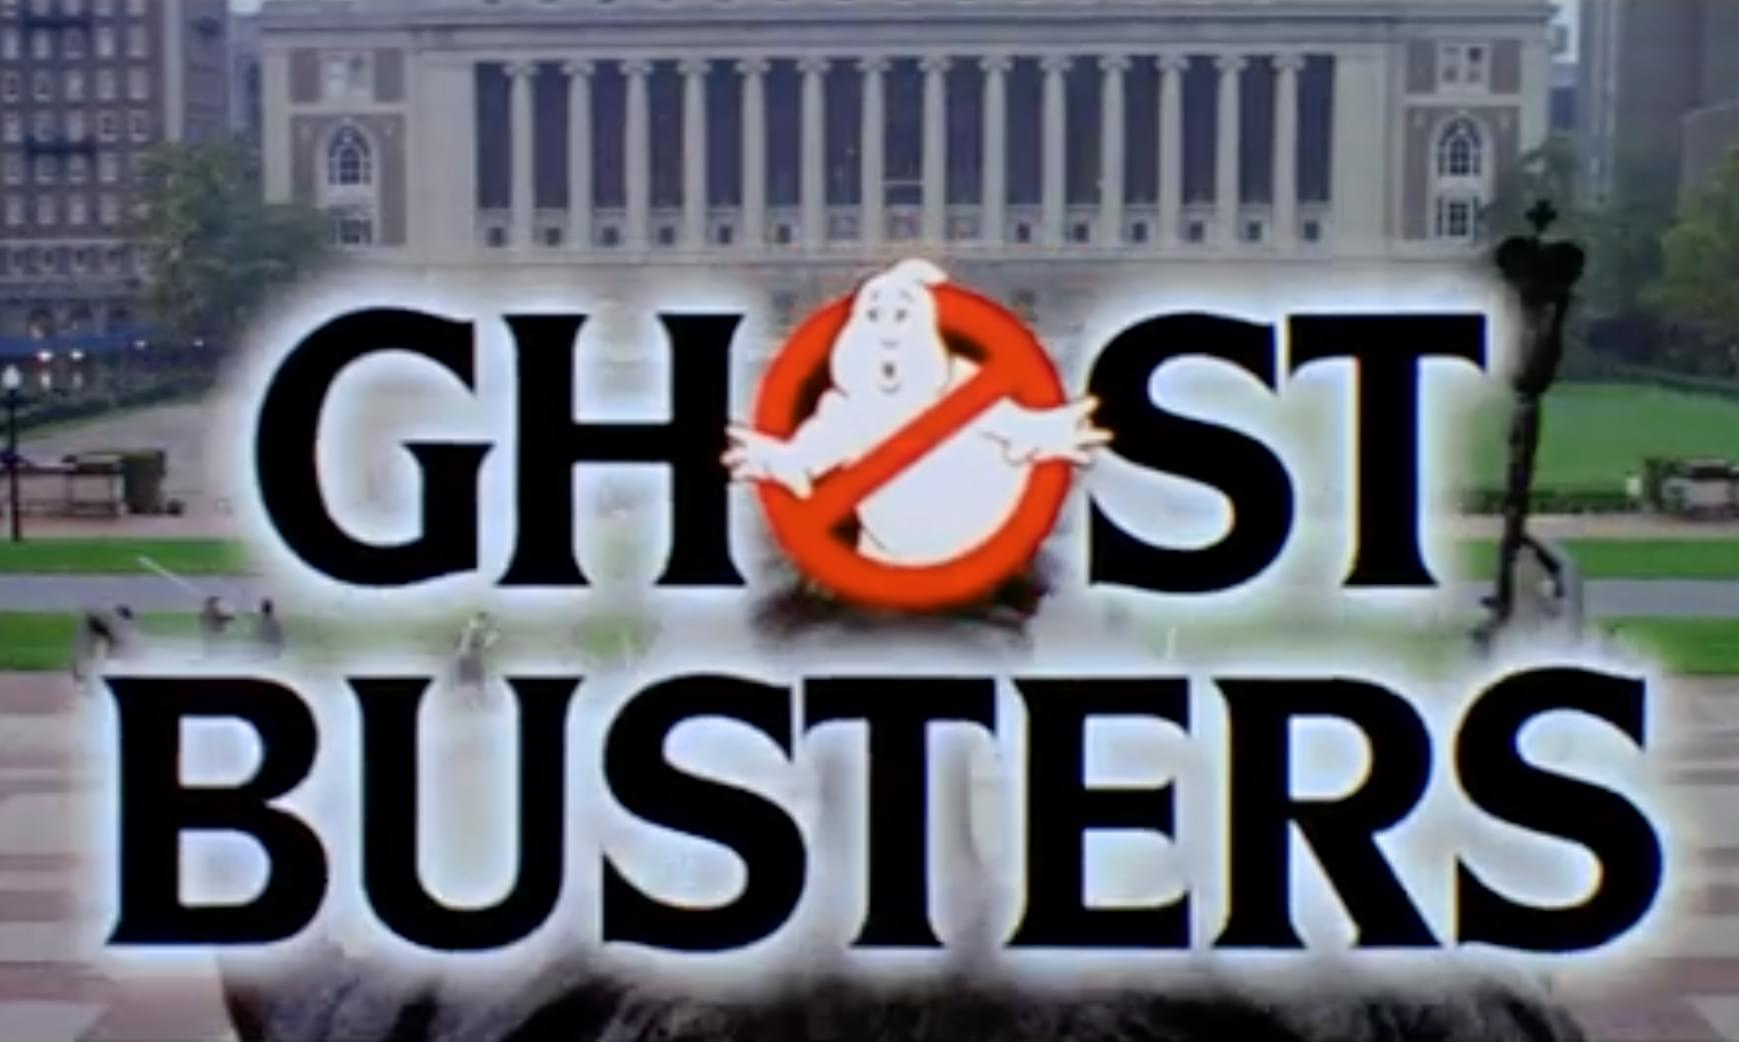 Upcoming new Ghostbusters movie – full cast announced!